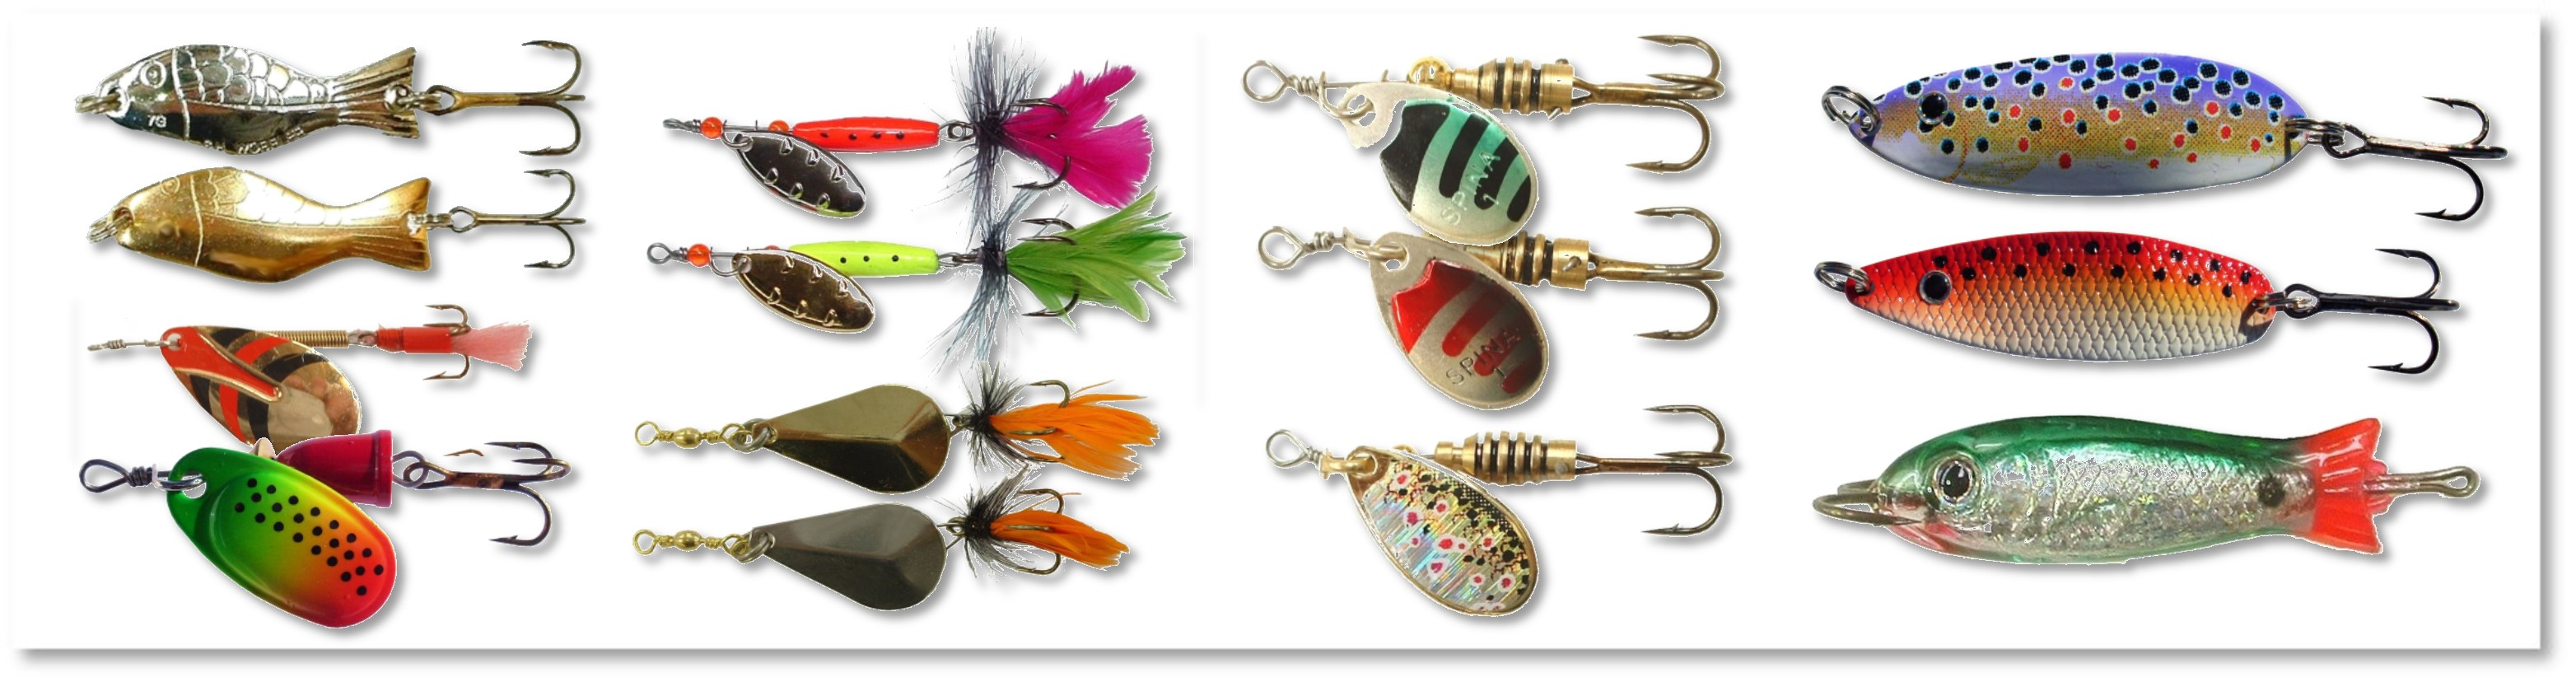 JM Gillies | GILLIES FRESHWATER LURES & TROLLING RIGS